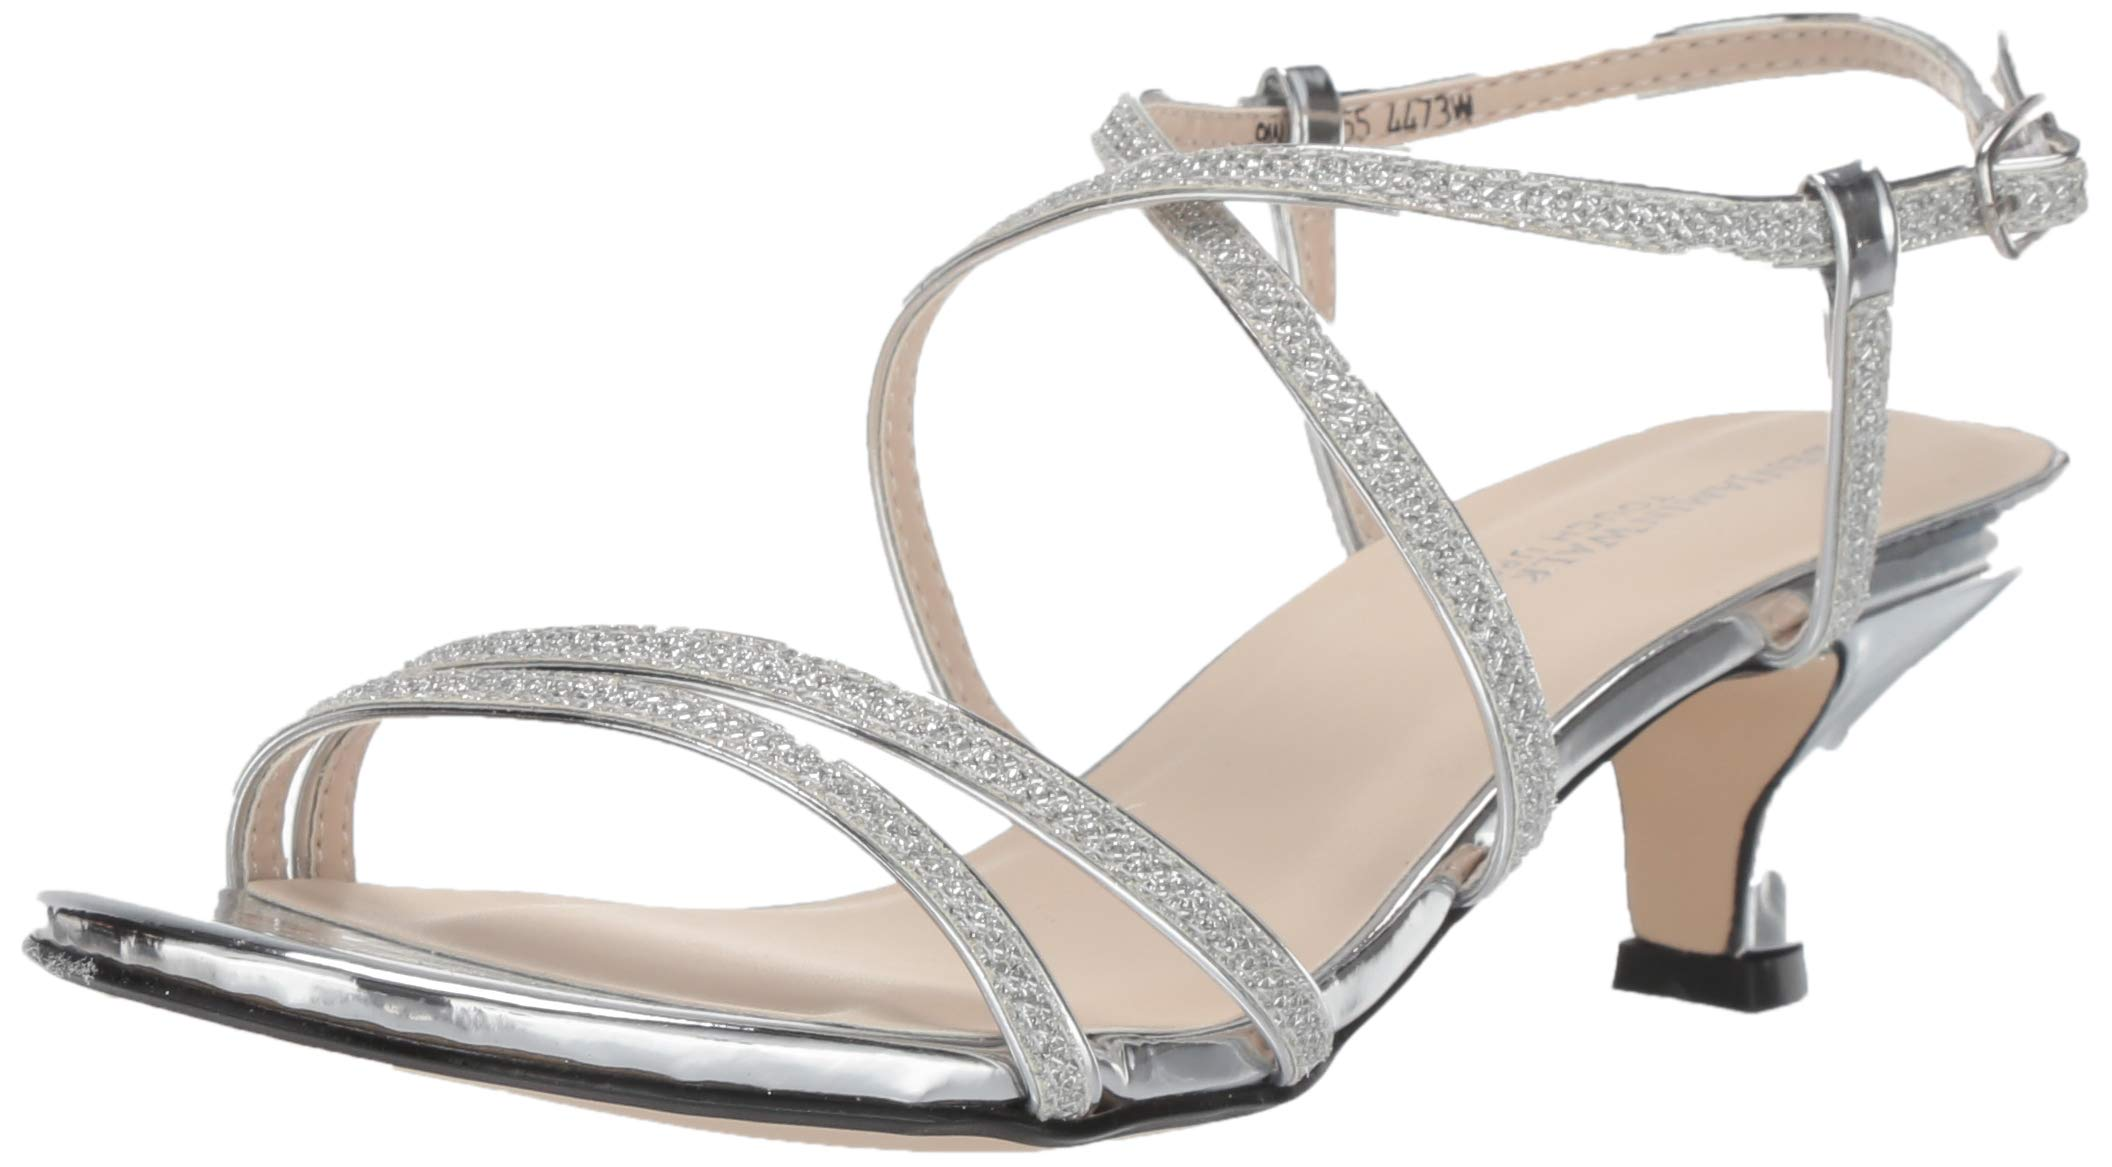 Touch Ups Women's Maisie Heeled Sandal, Silver, 8 W US by Touch Ups